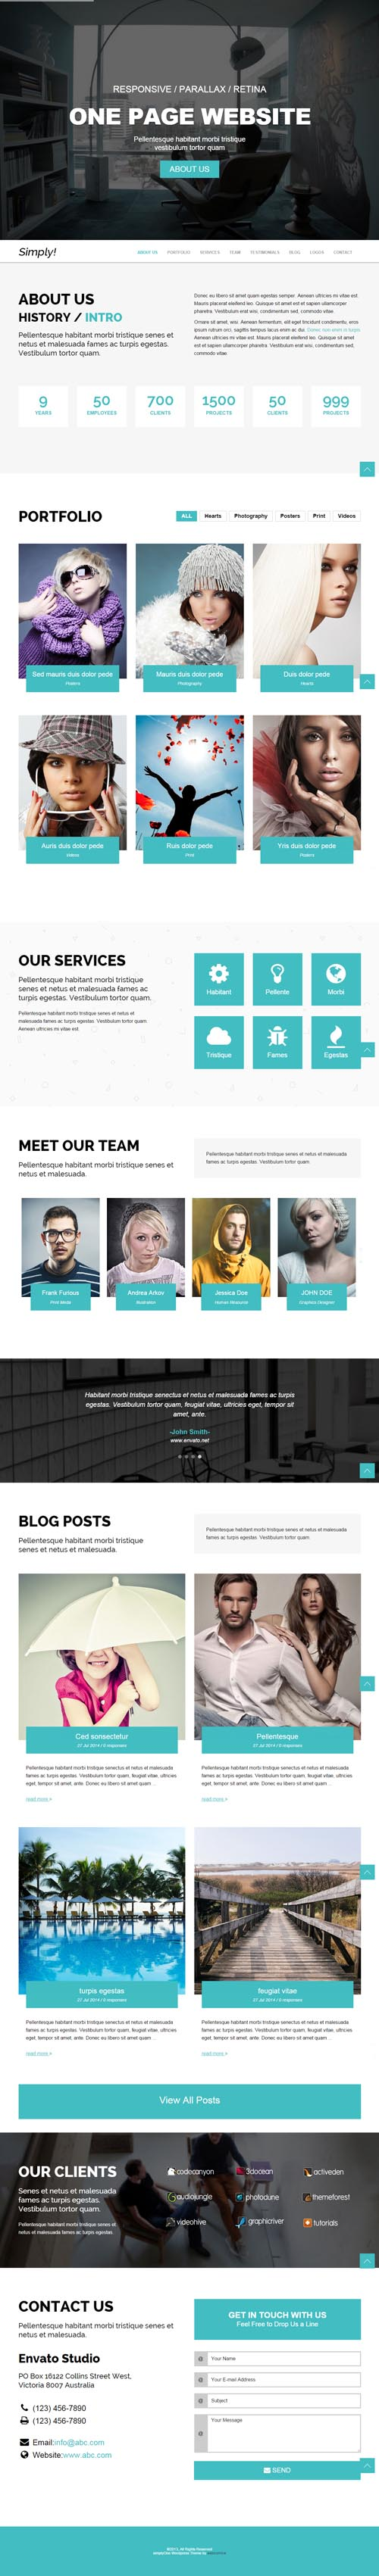 SimplyOne - One Page Responsive WordPress Theme